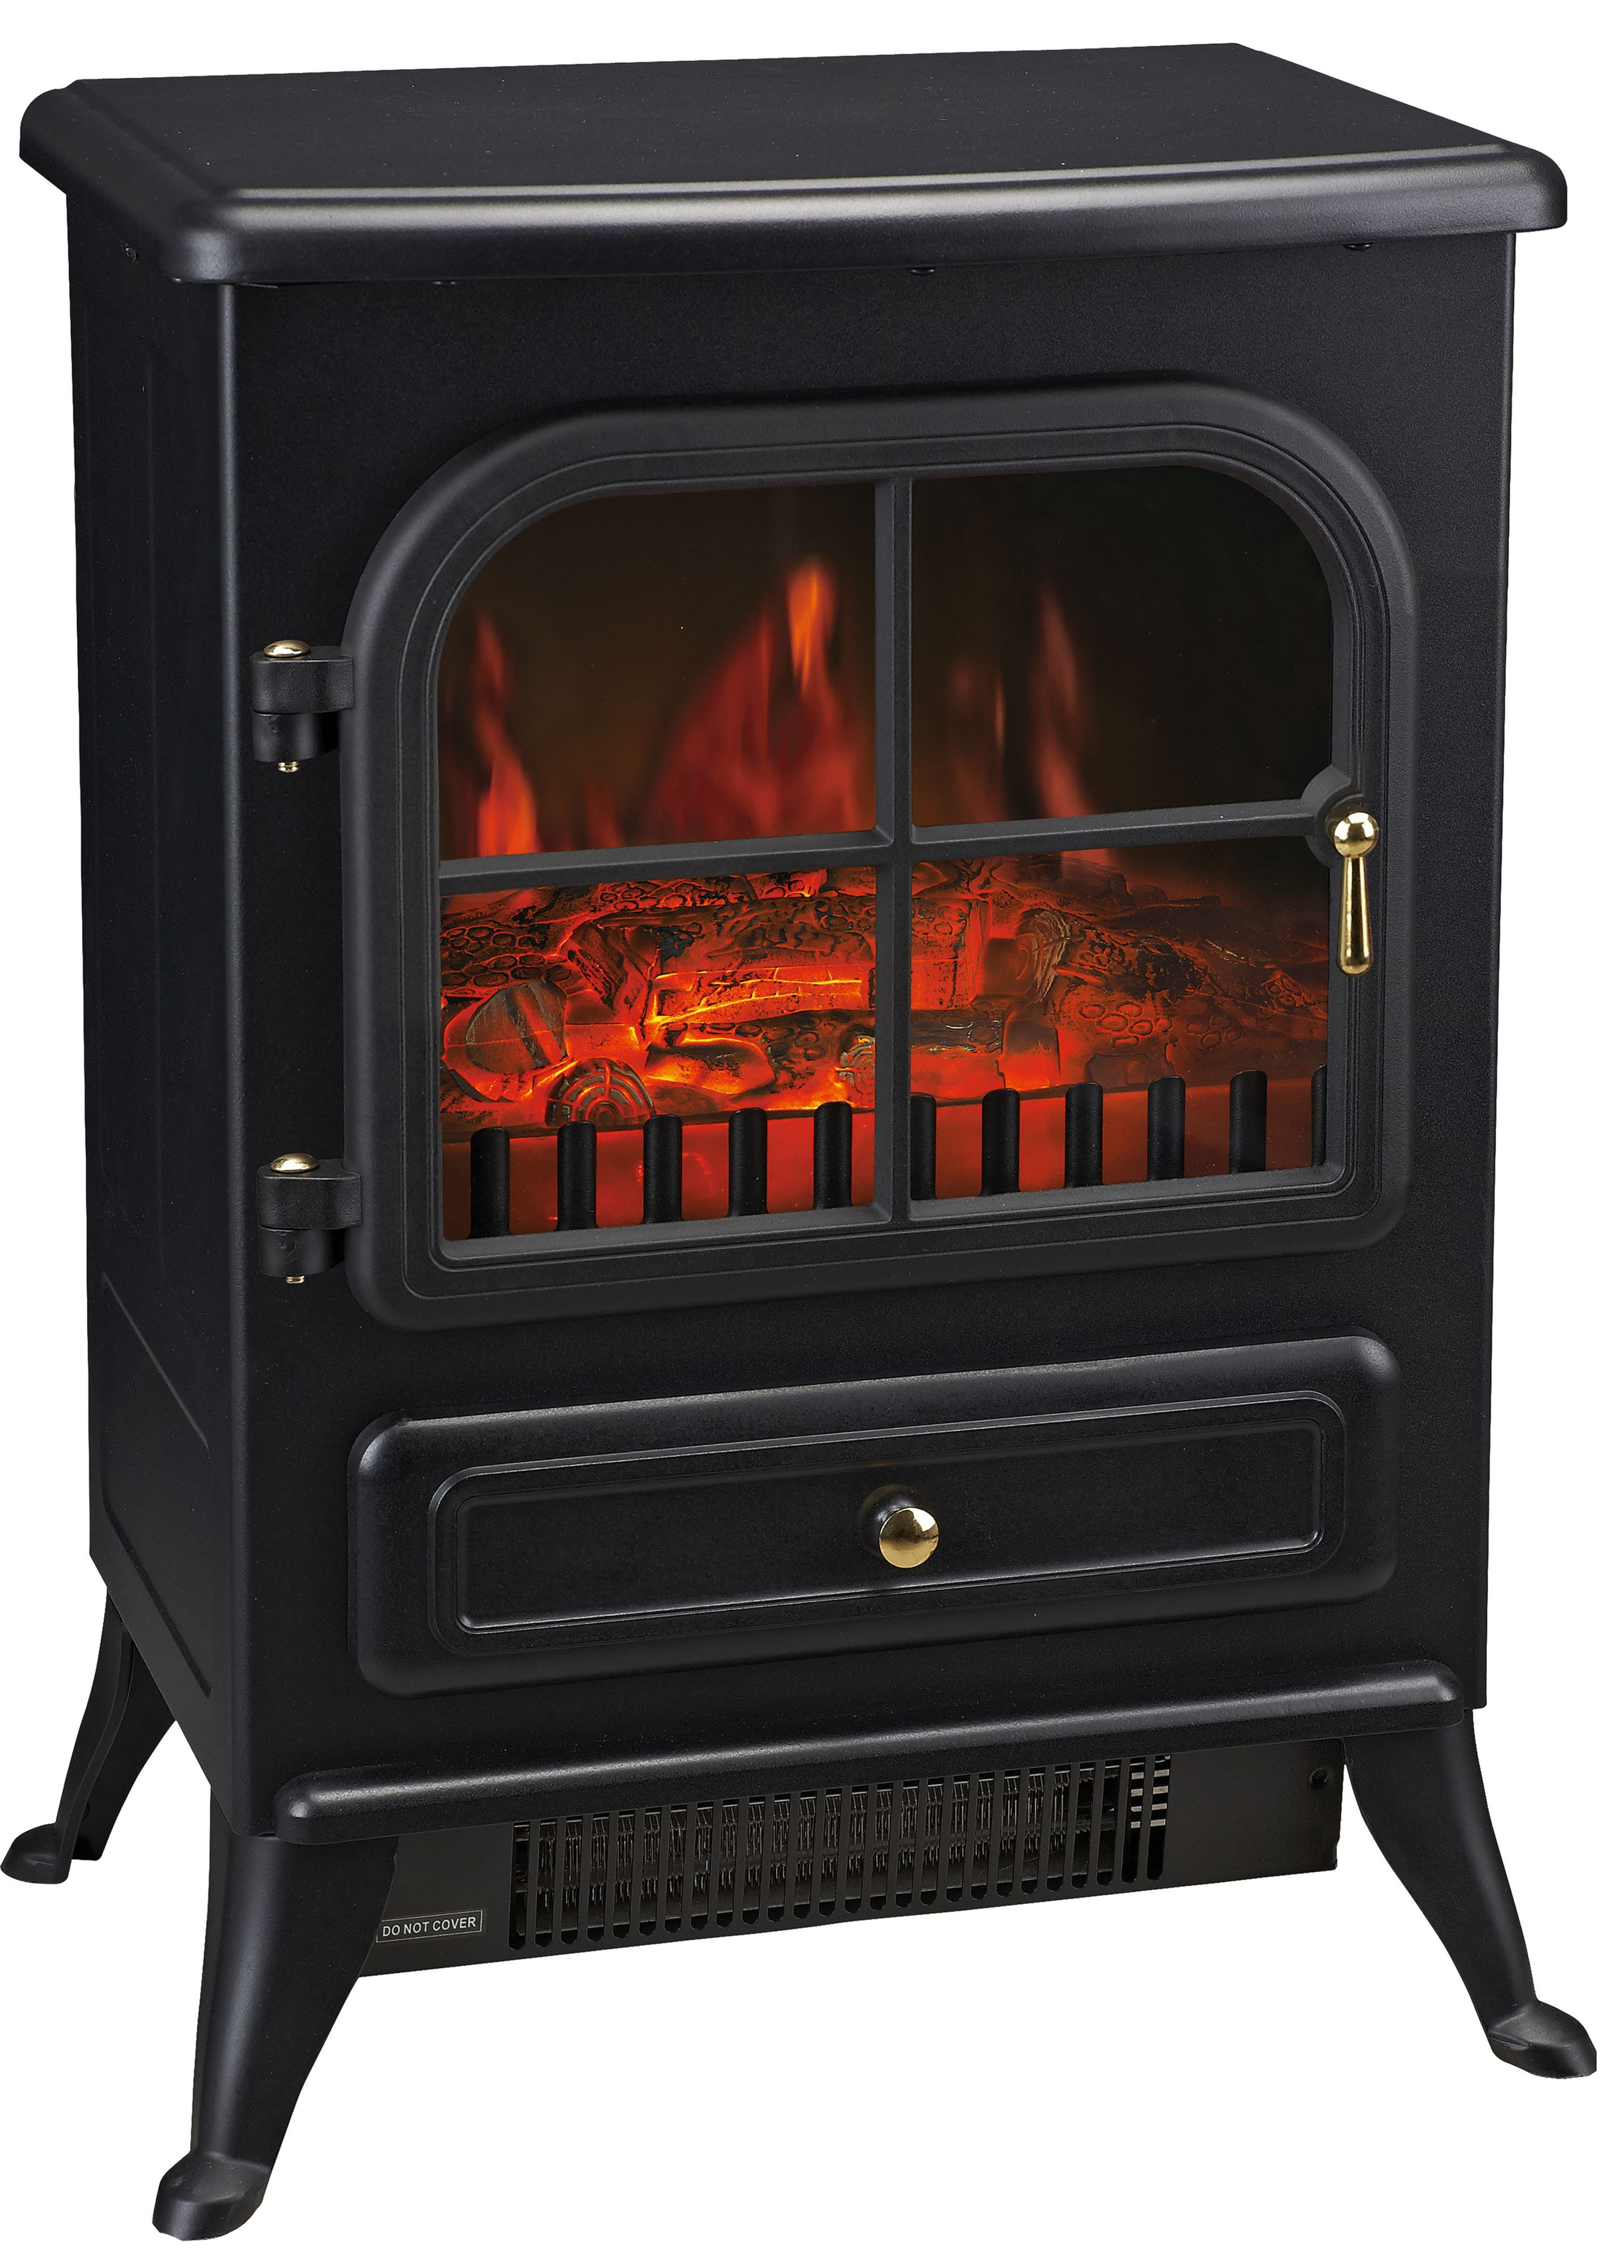 Akershus Black Freestanding Electric Stove, 1850 W